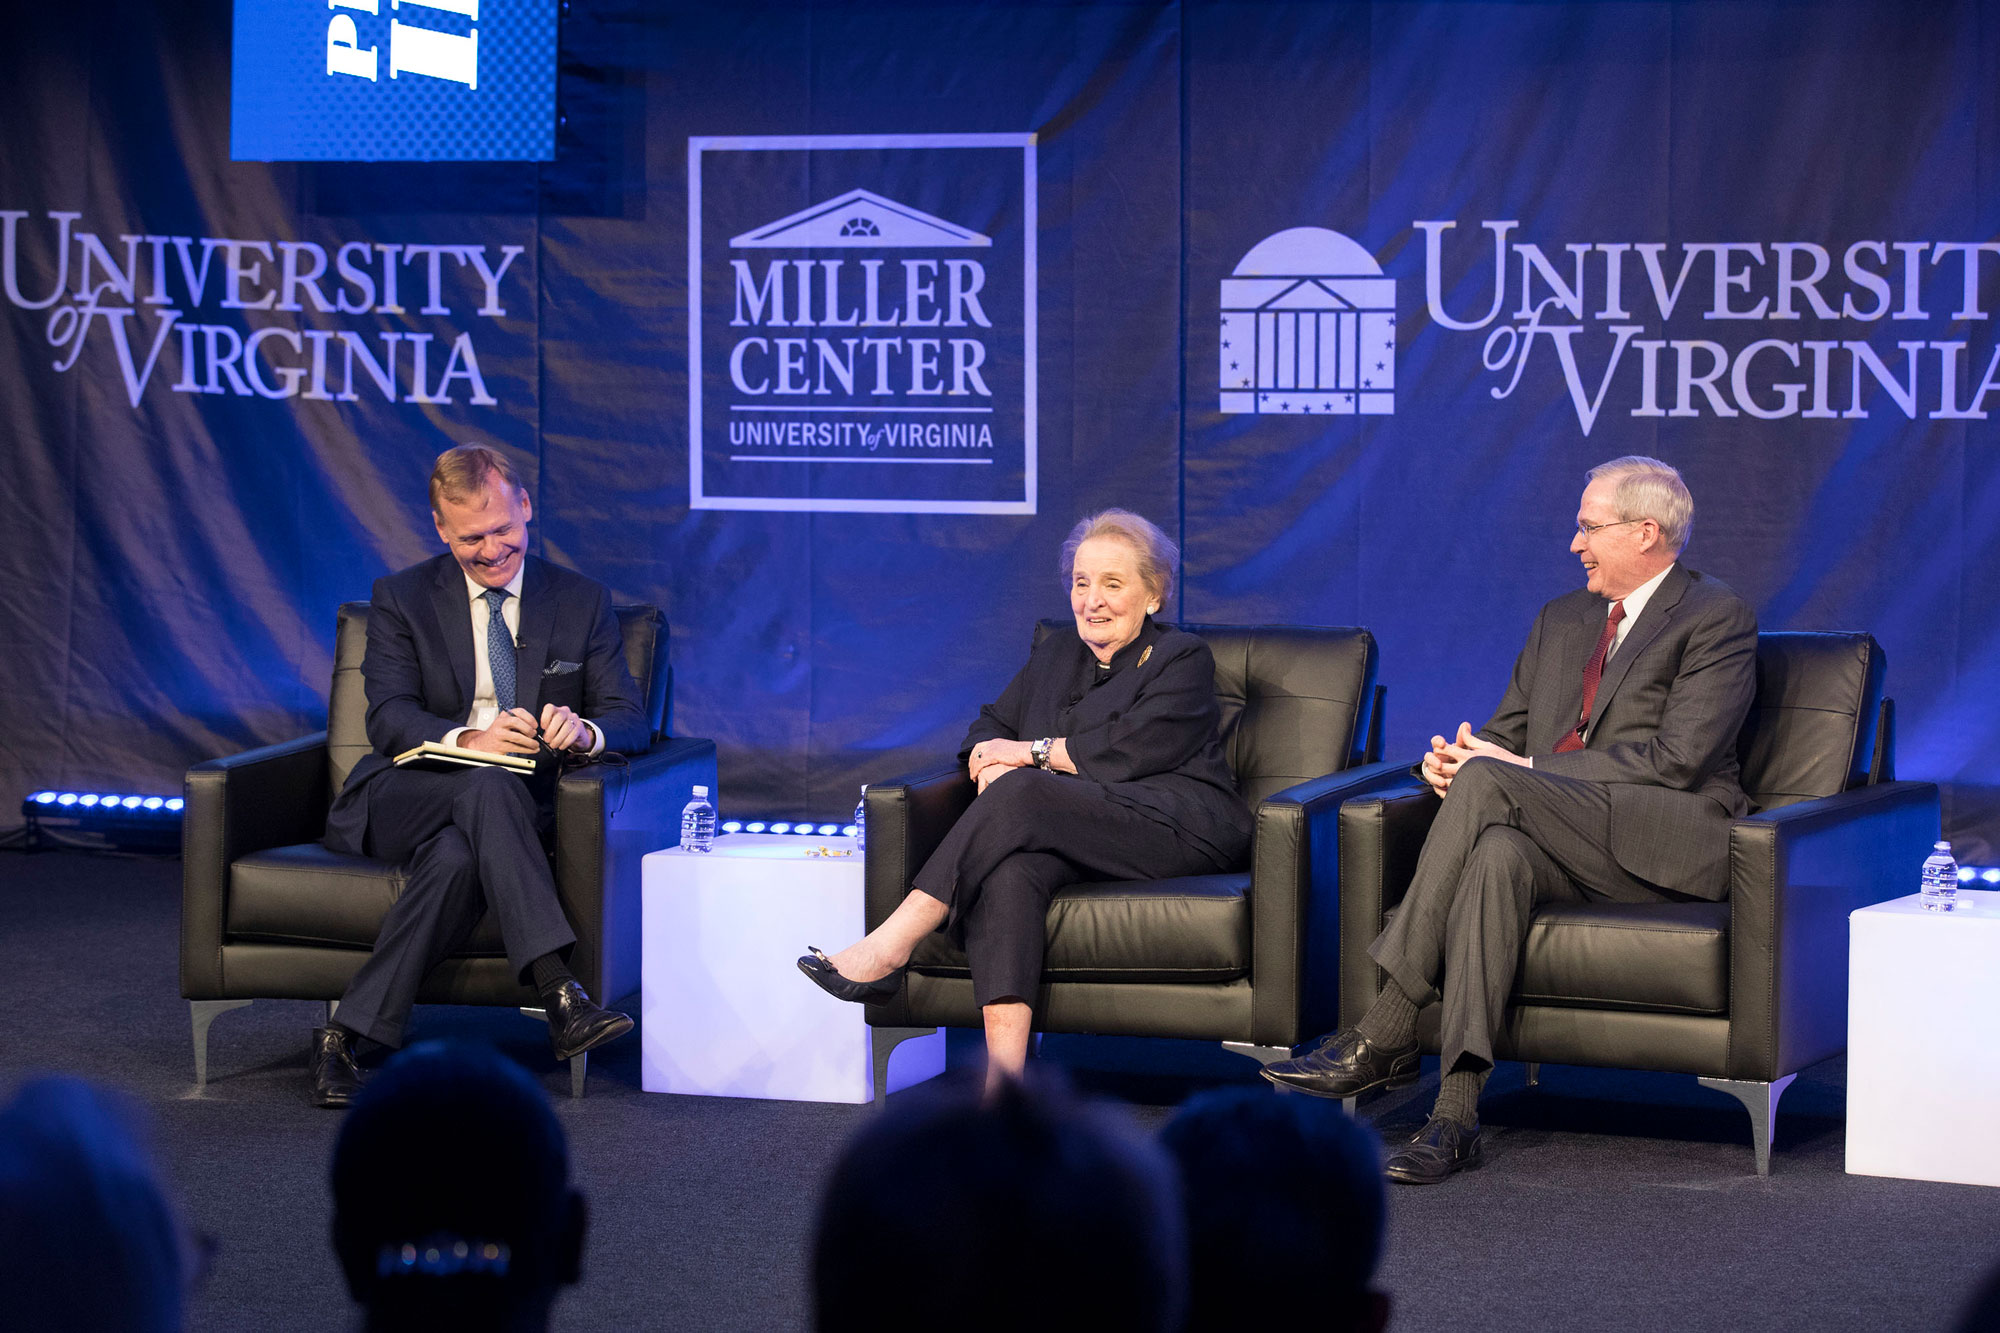 Former Secretary of State Madeleine Albright, center, and foreign policy adviser Stephen Hadley, right, kicked off the festival with moderator John Dickerson. (Photo by Dan Addison, University Communications)